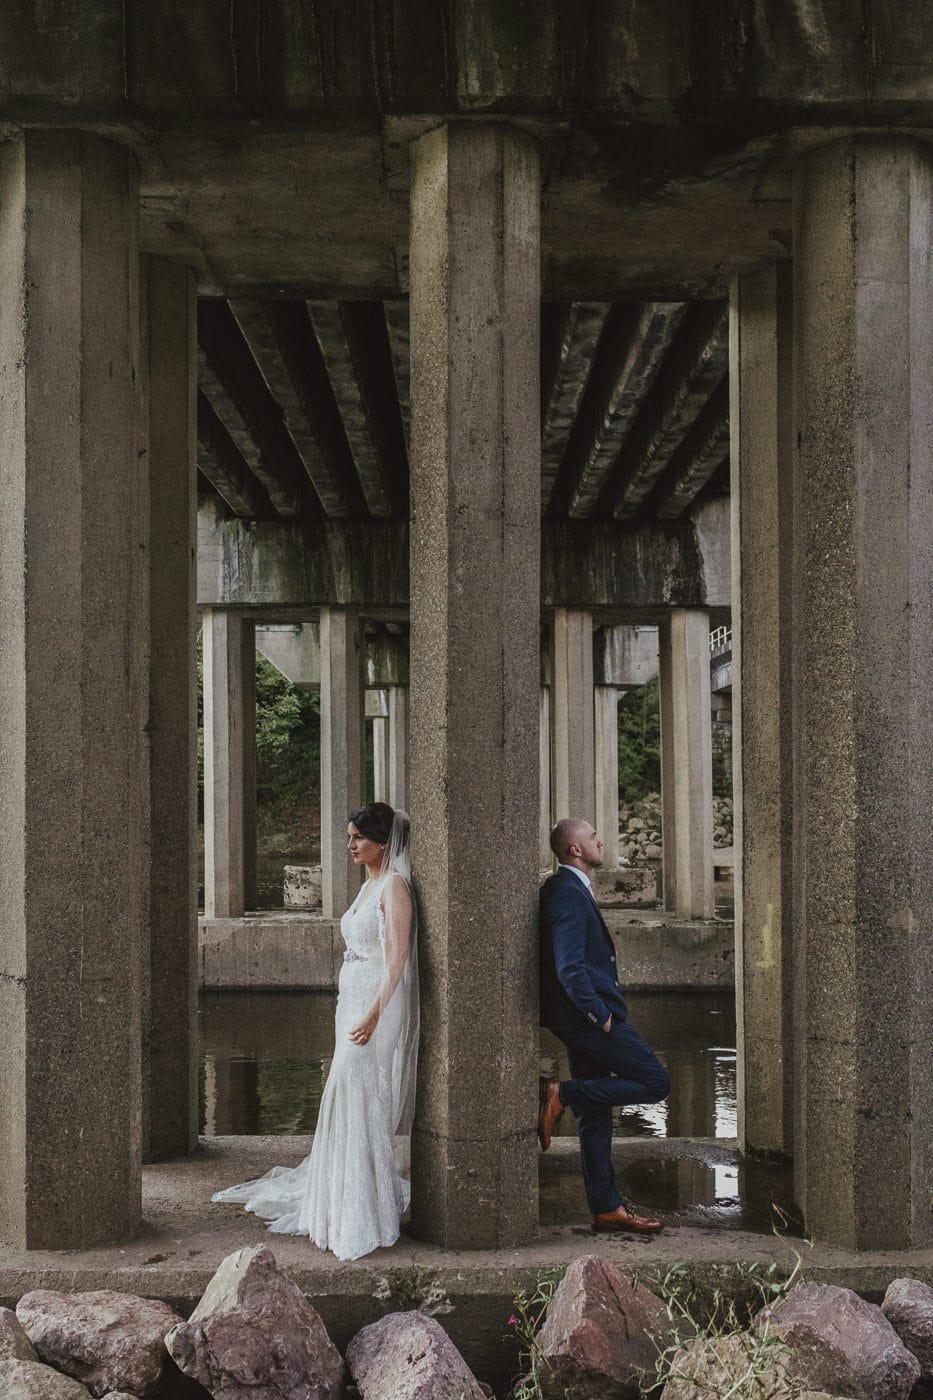 Bride and Groom on their wedding day resting against pillars under a bridge in a creative wedding photograph